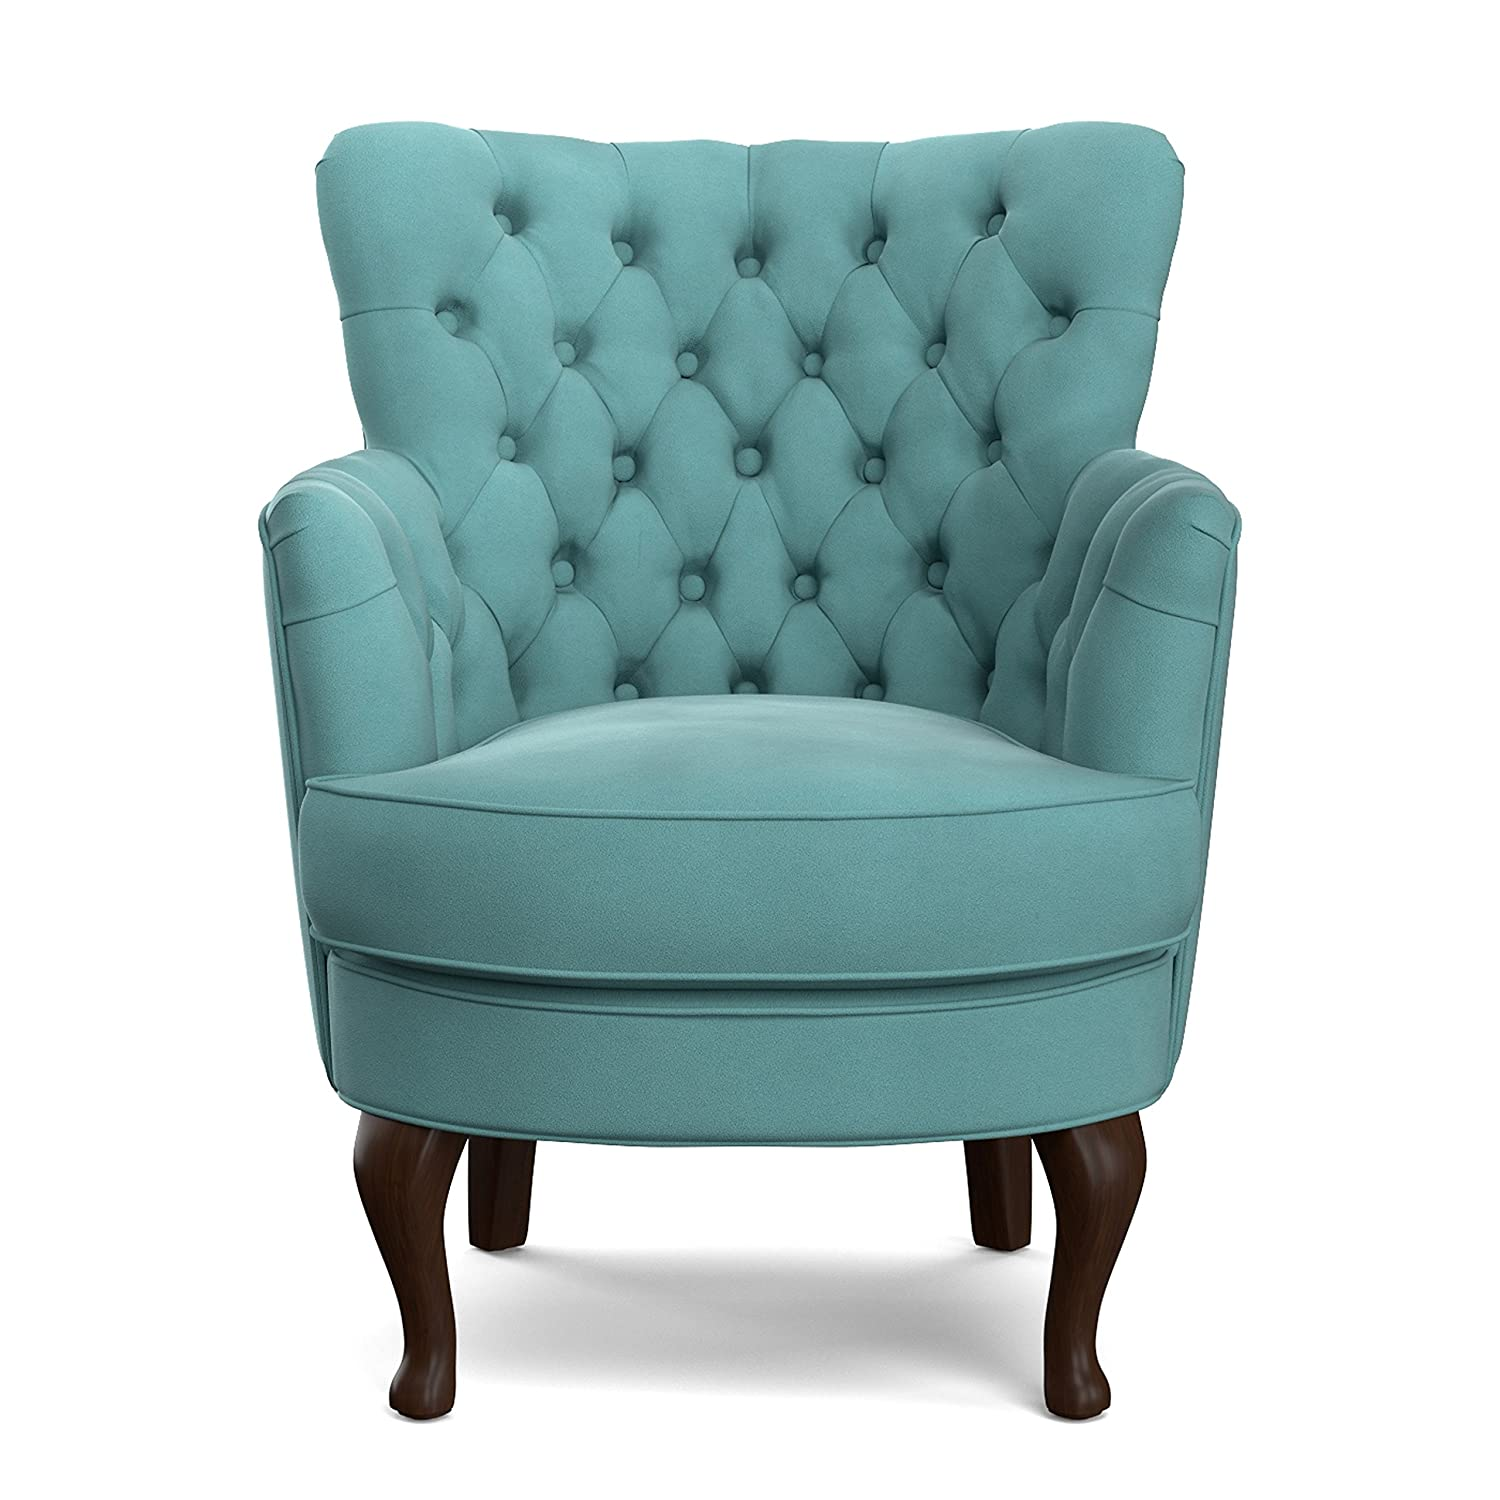 Gray And Teal Bedroom Luxury Turquoise Accent Chair Rtty1 Com Rtty1 Com